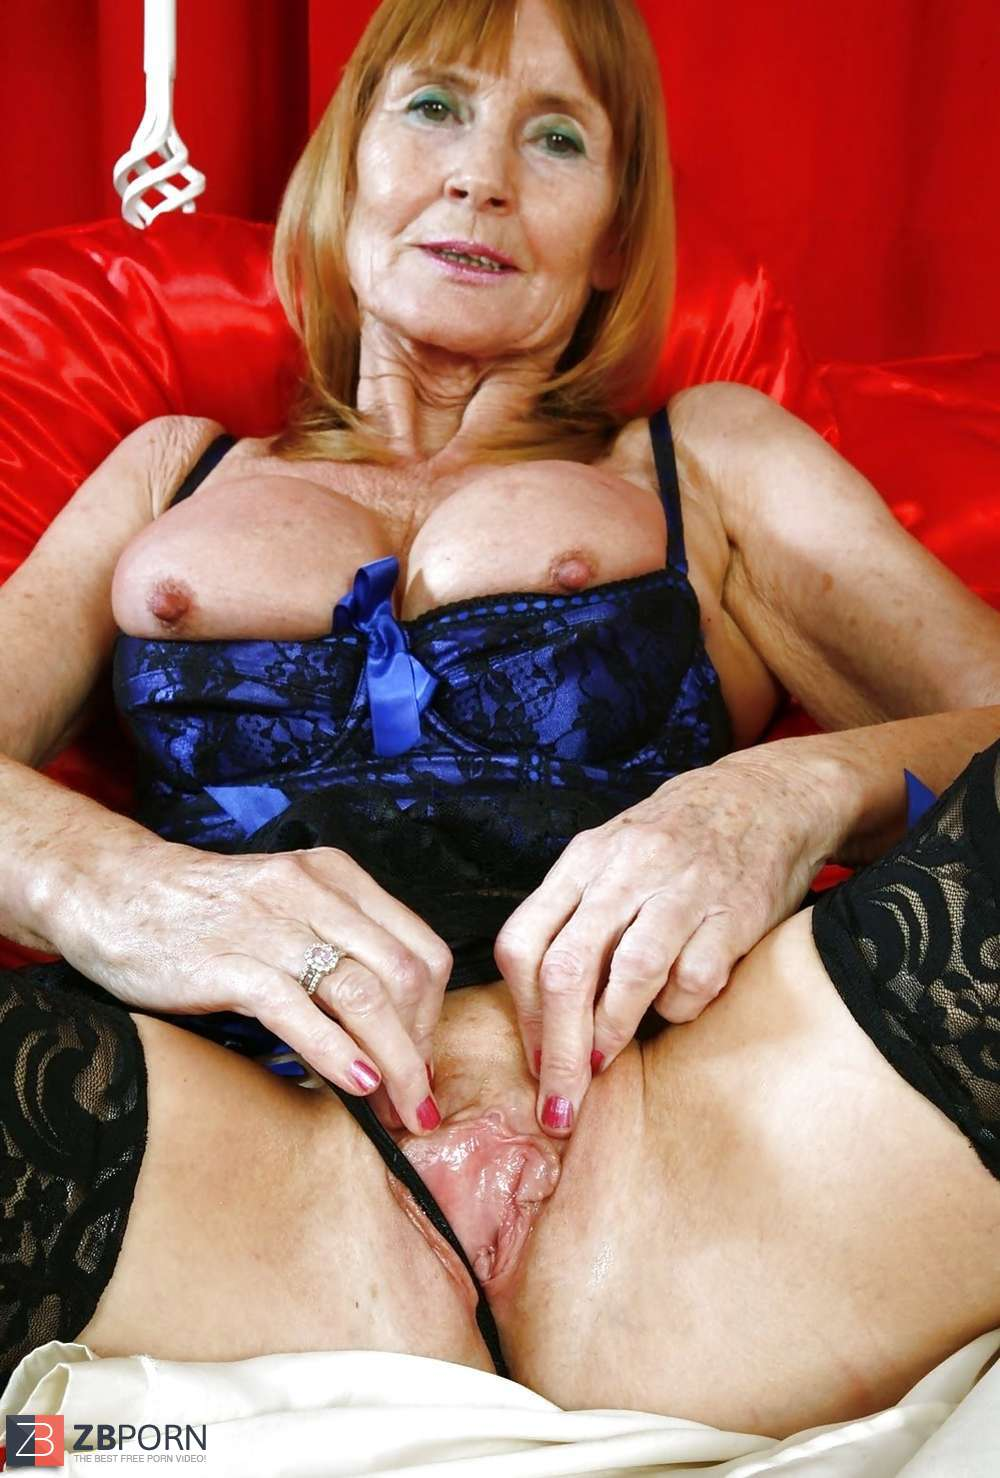 Hot pictures Pantyhose sexy grannies licking